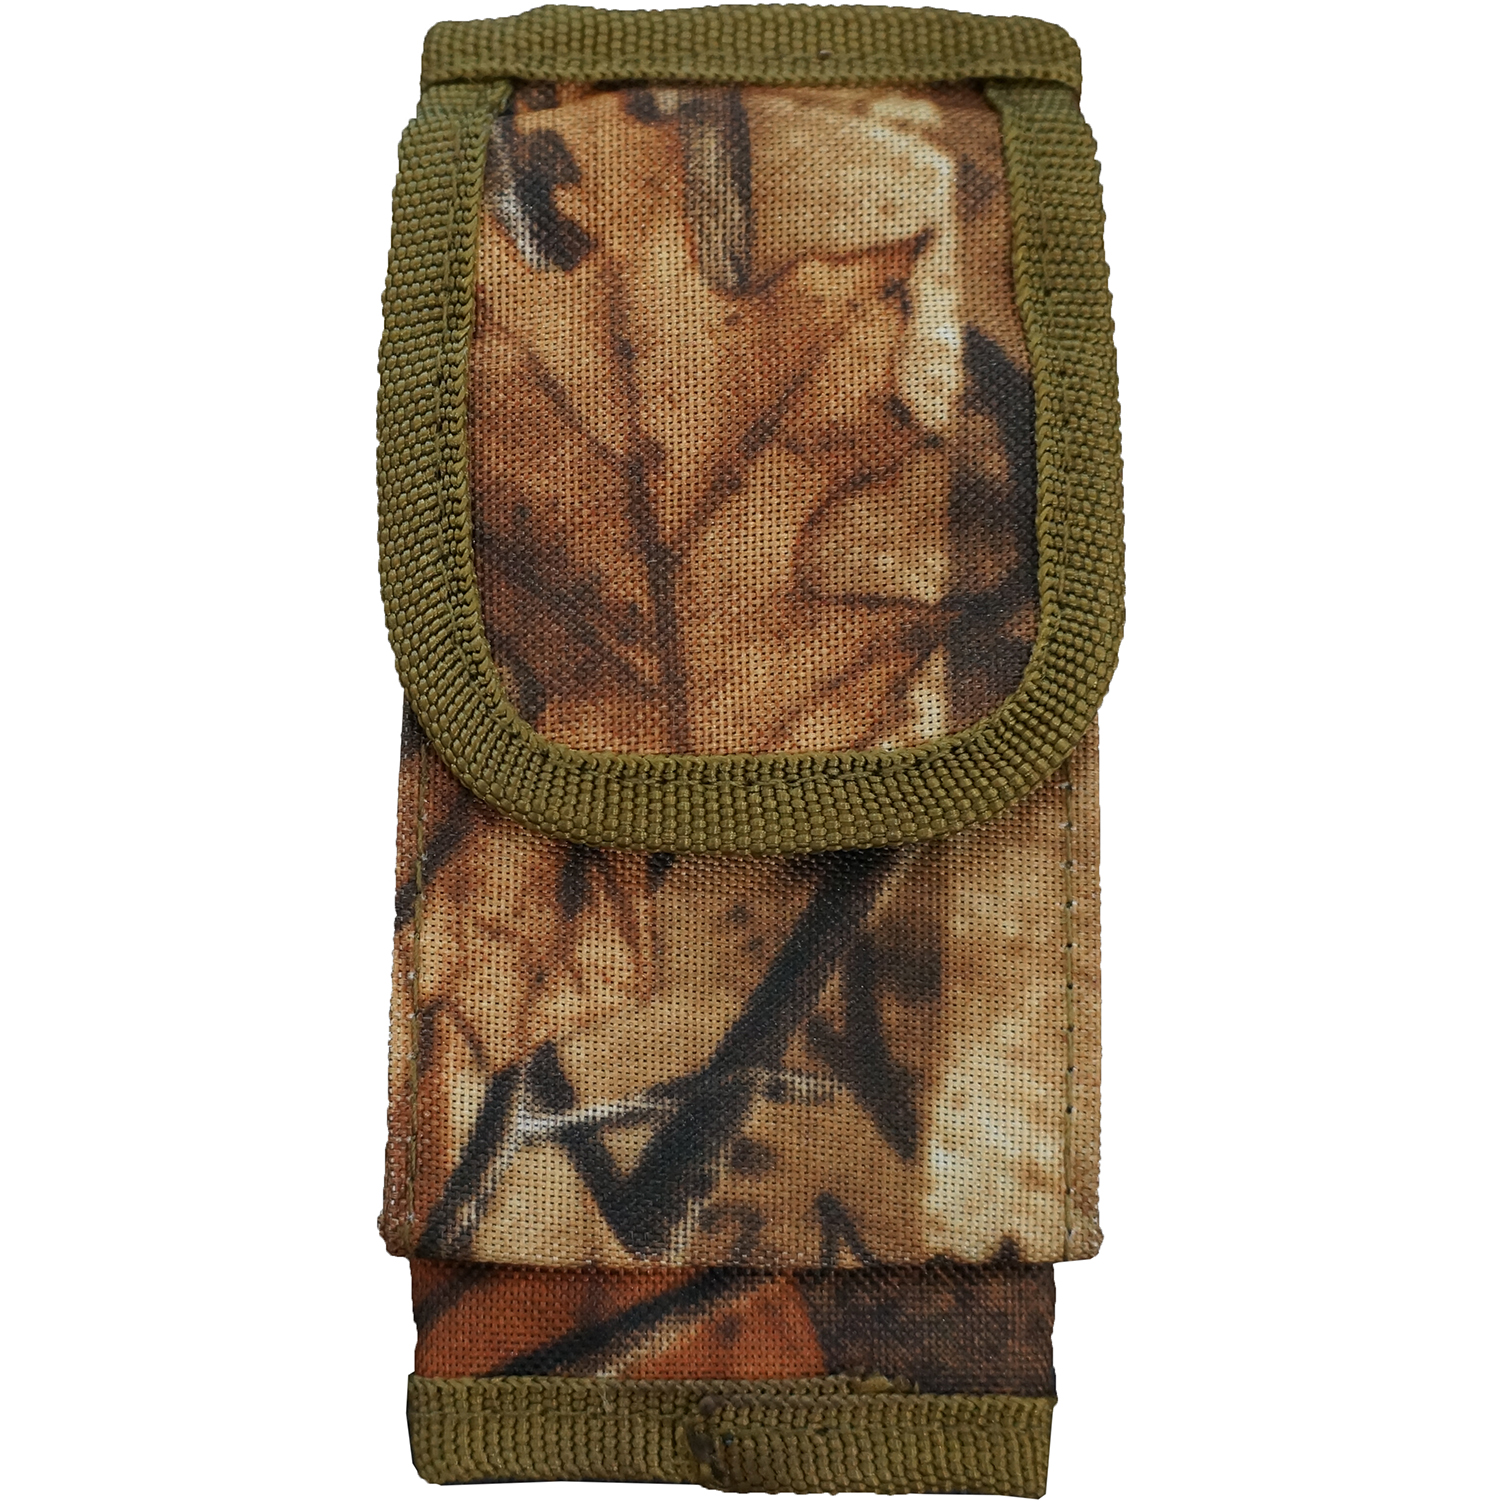 Every Day Carry Tactical Velcro Seatbelt Strap Holster Pouch - Oak Wood Camo